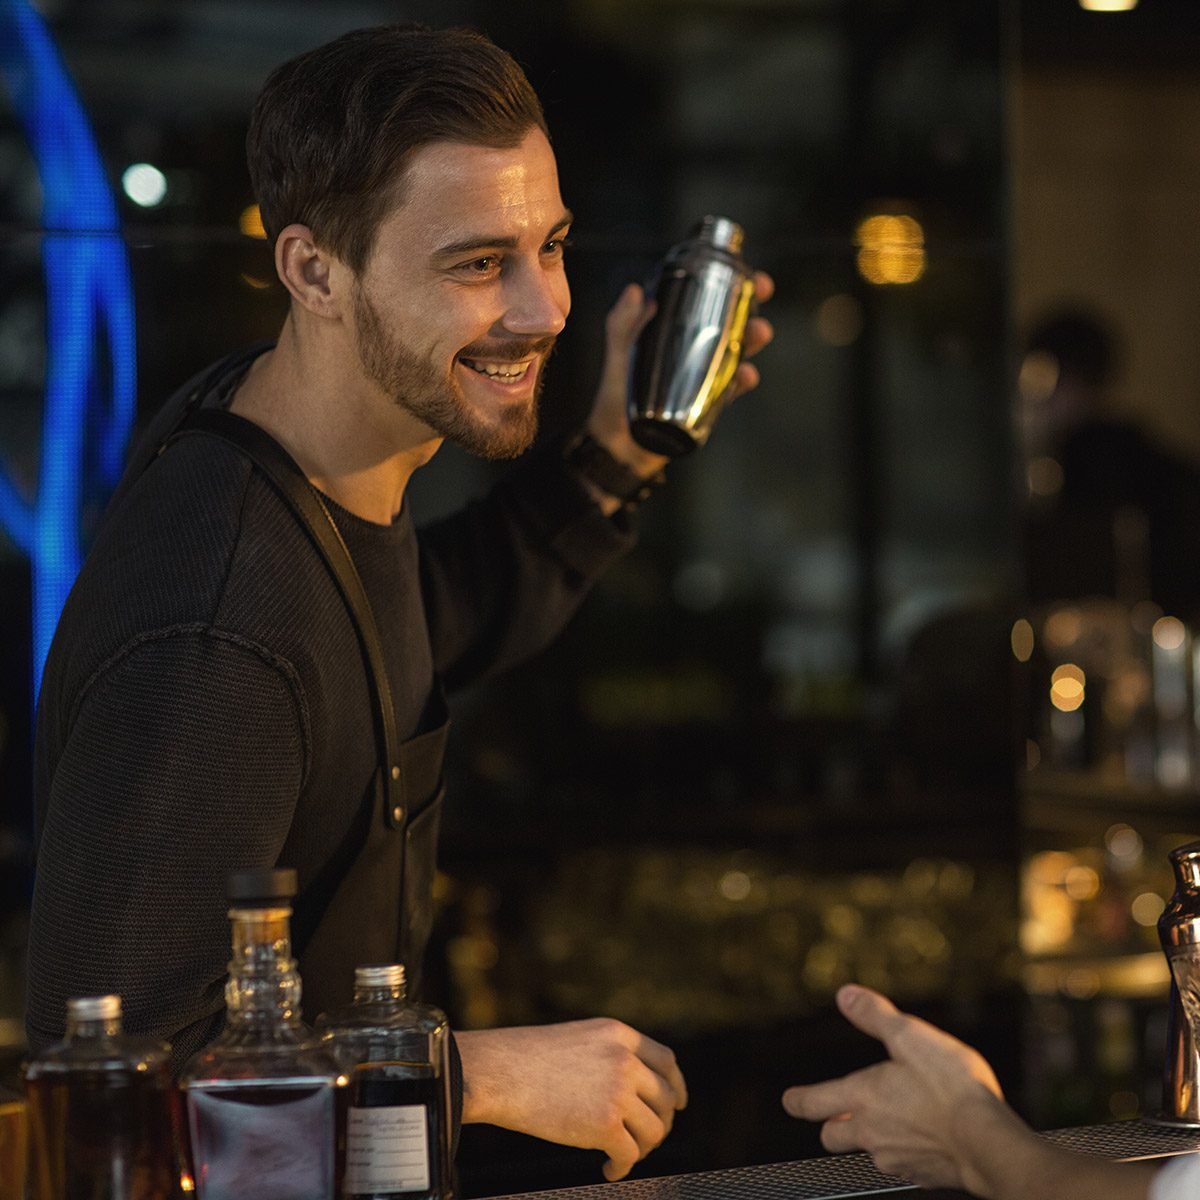 Cheerful handsome young male bartender working preparing cocktails at the bar talking to his male client smiling joyfully communication relationships party friendly service positivity worker job